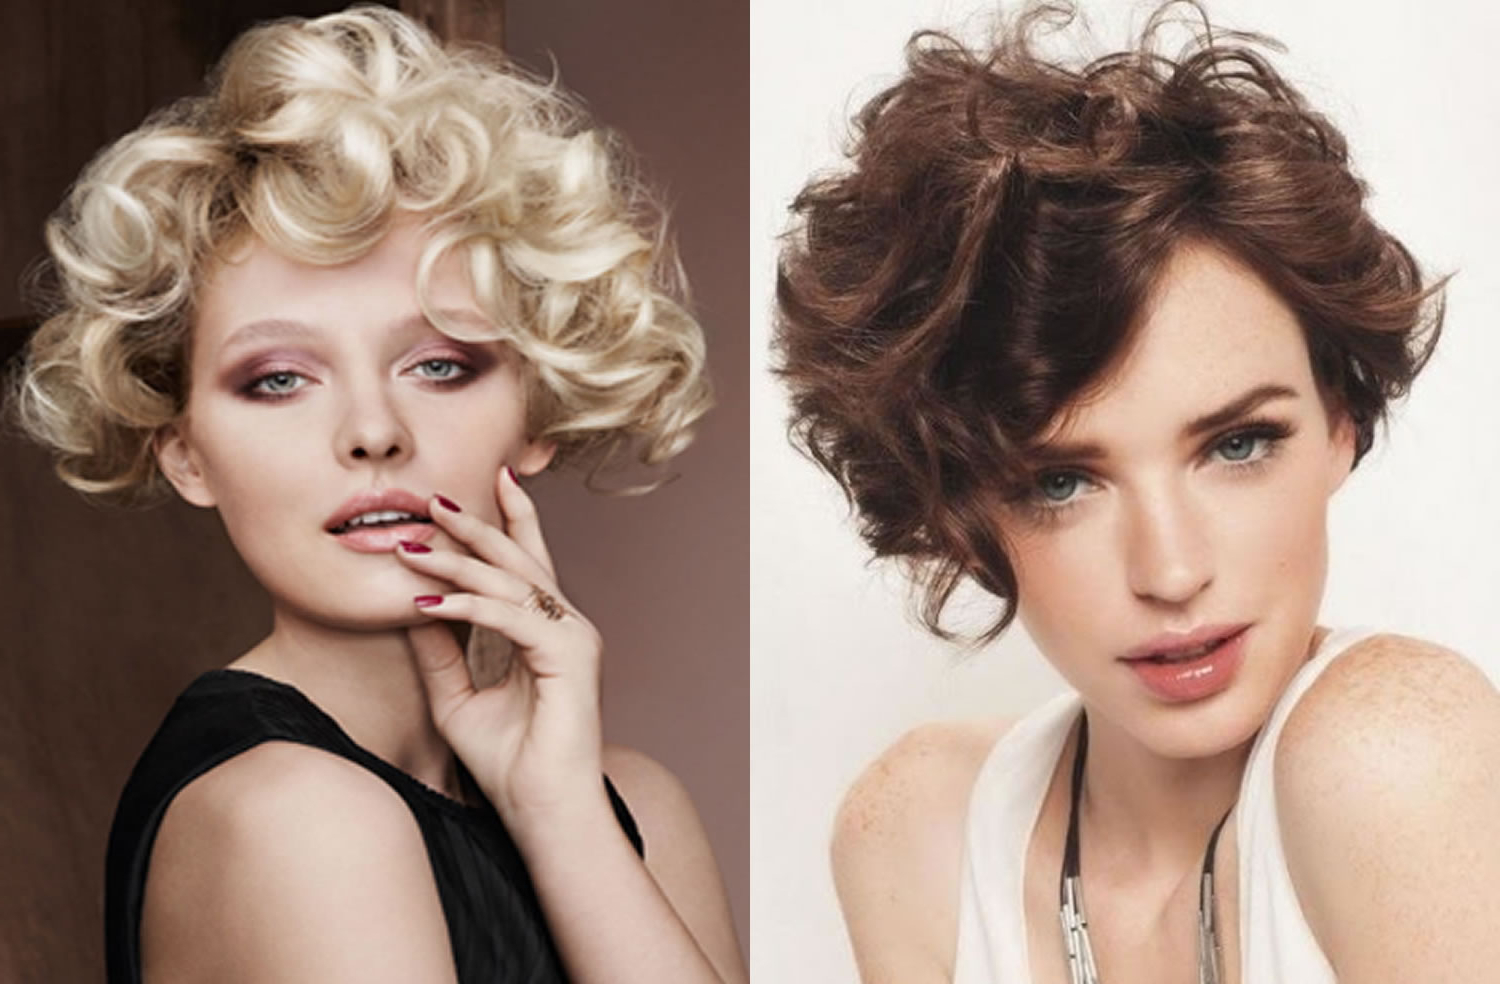 Top 100 Beautiful Short Haircuts For Women 2018 | Images+Videos Regarding Trendy Short Curly Haircuts (View 11 of 25)